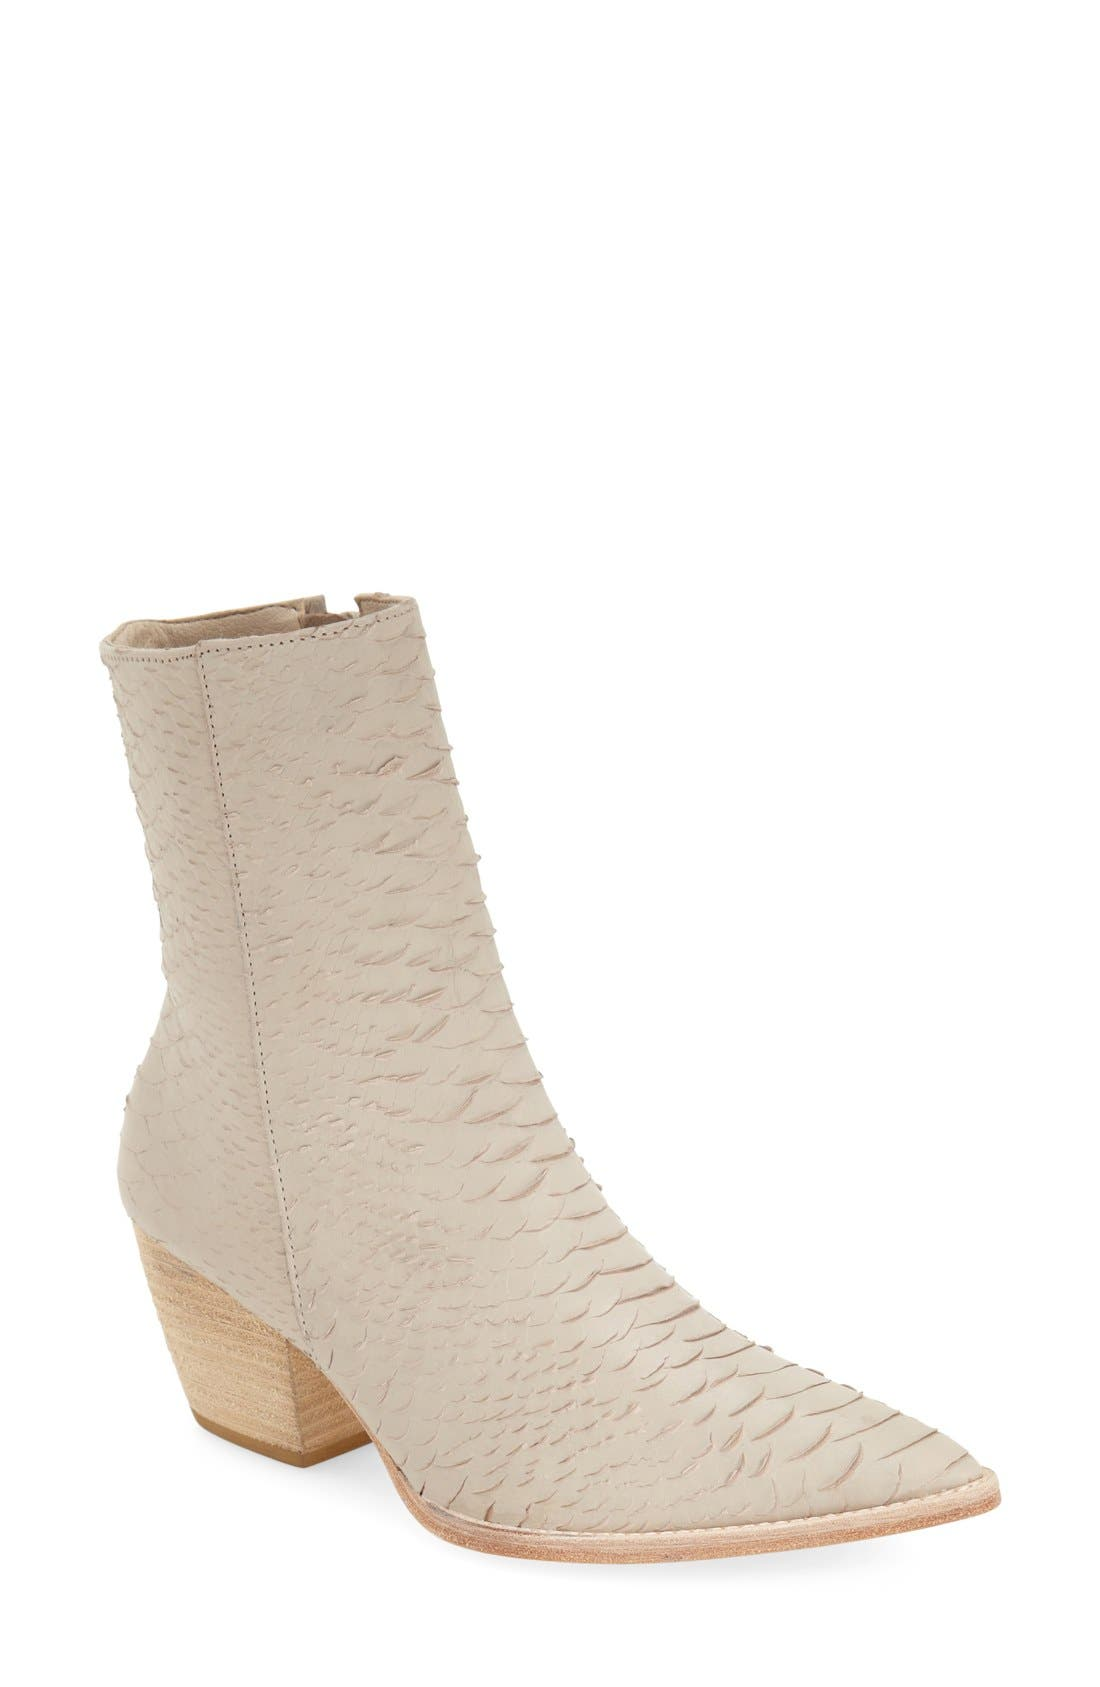 Alternate Image 1 Selected - Matisse 'Caty' Western Pointy Toe Bootie (Women)